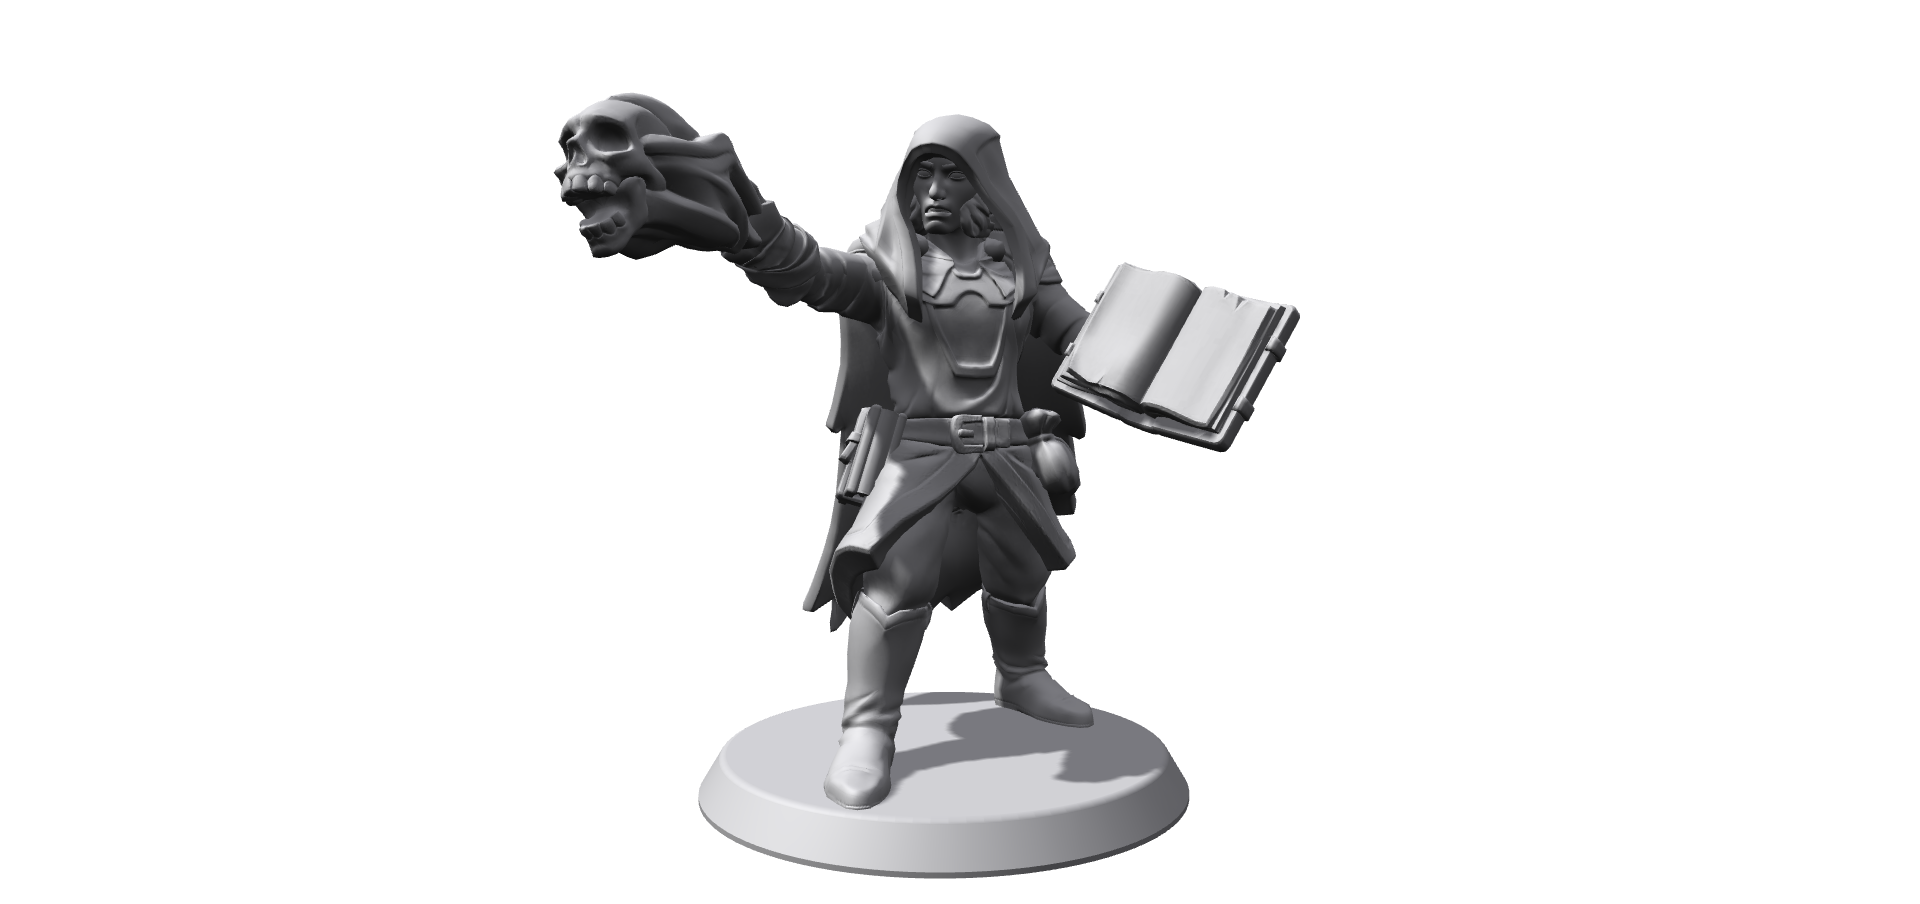 Character Design Forge : Heroforge custom minis general rpg discussion vienna